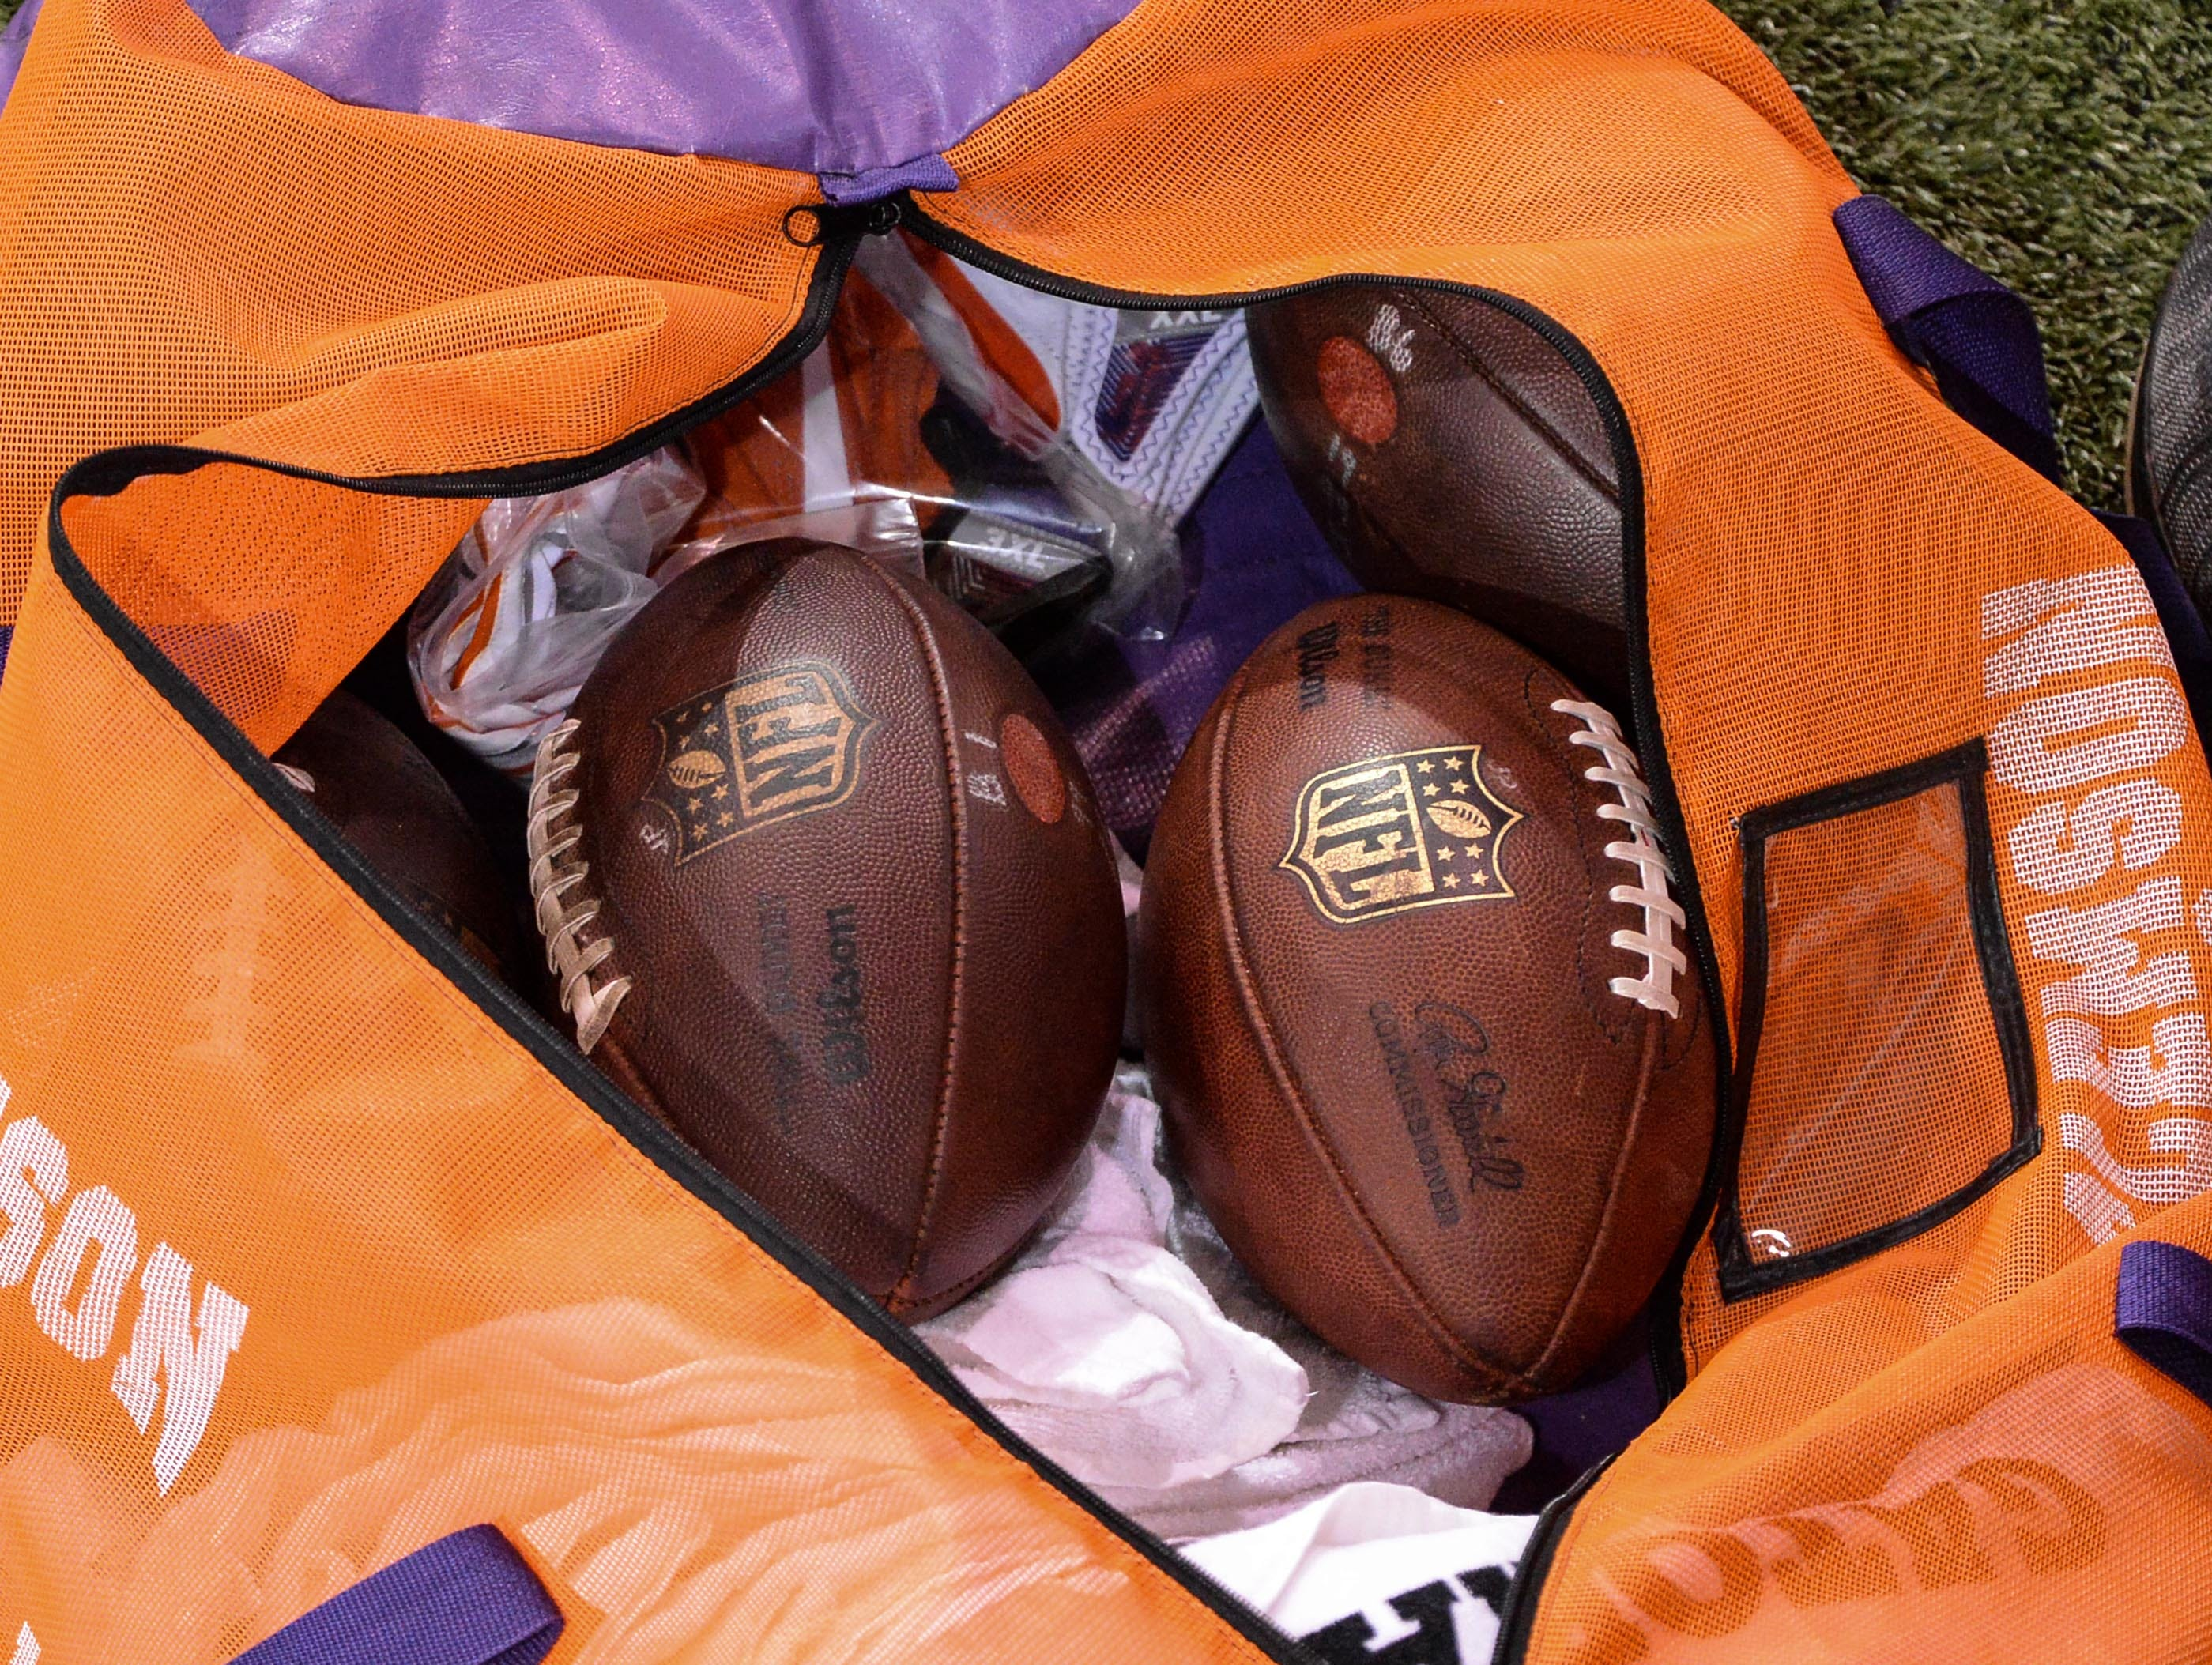 NFL footballs during Clemson pro day at the Poe Indoor Facility in Clemson Thursday, March 14, 2019.